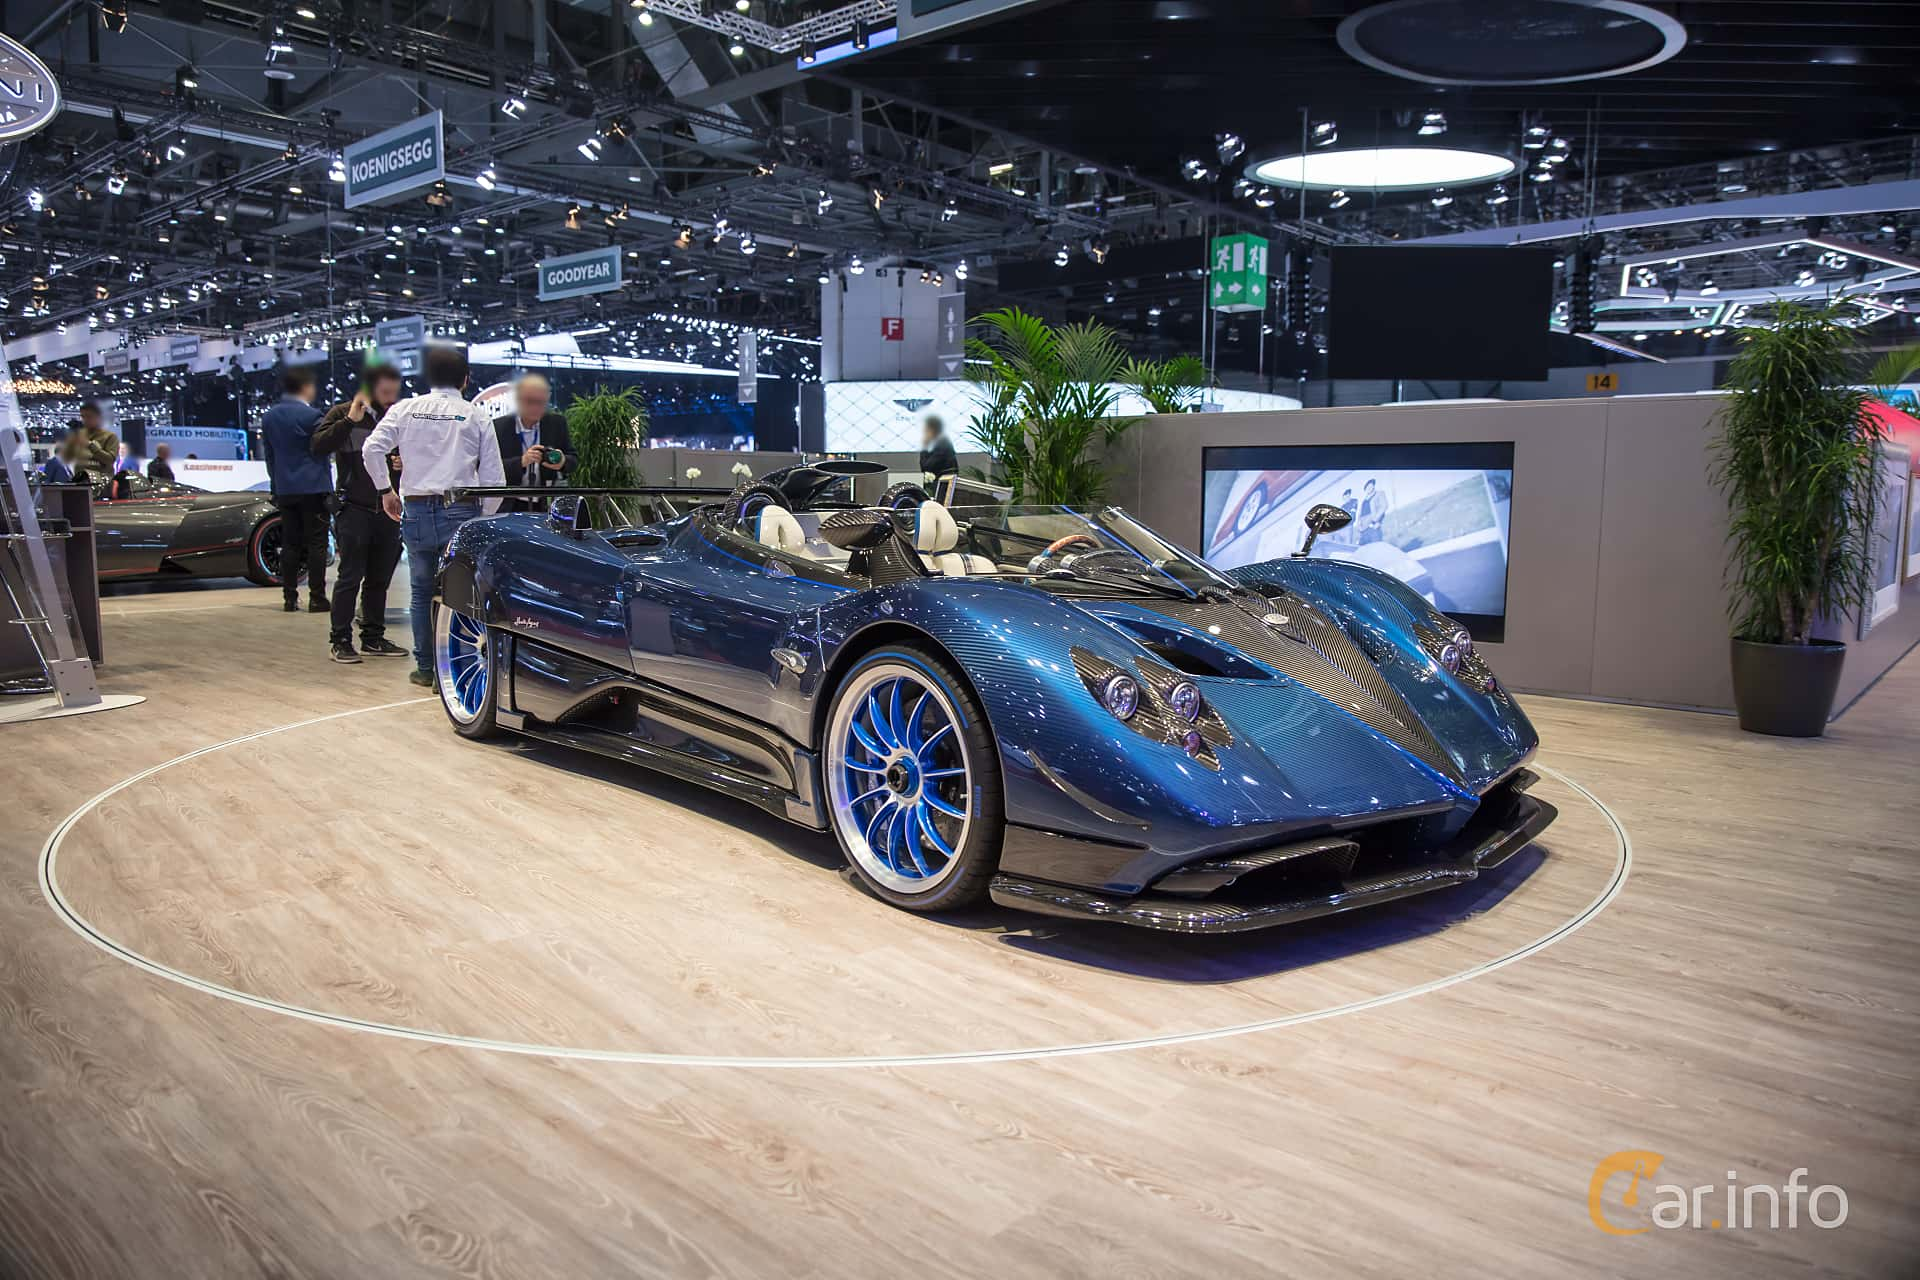 7 images of pagani zonda hp barchetta 7 3 v12 amg manual 802hp 2017 by jarbo. Black Bedroom Furniture Sets. Home Design Ideas